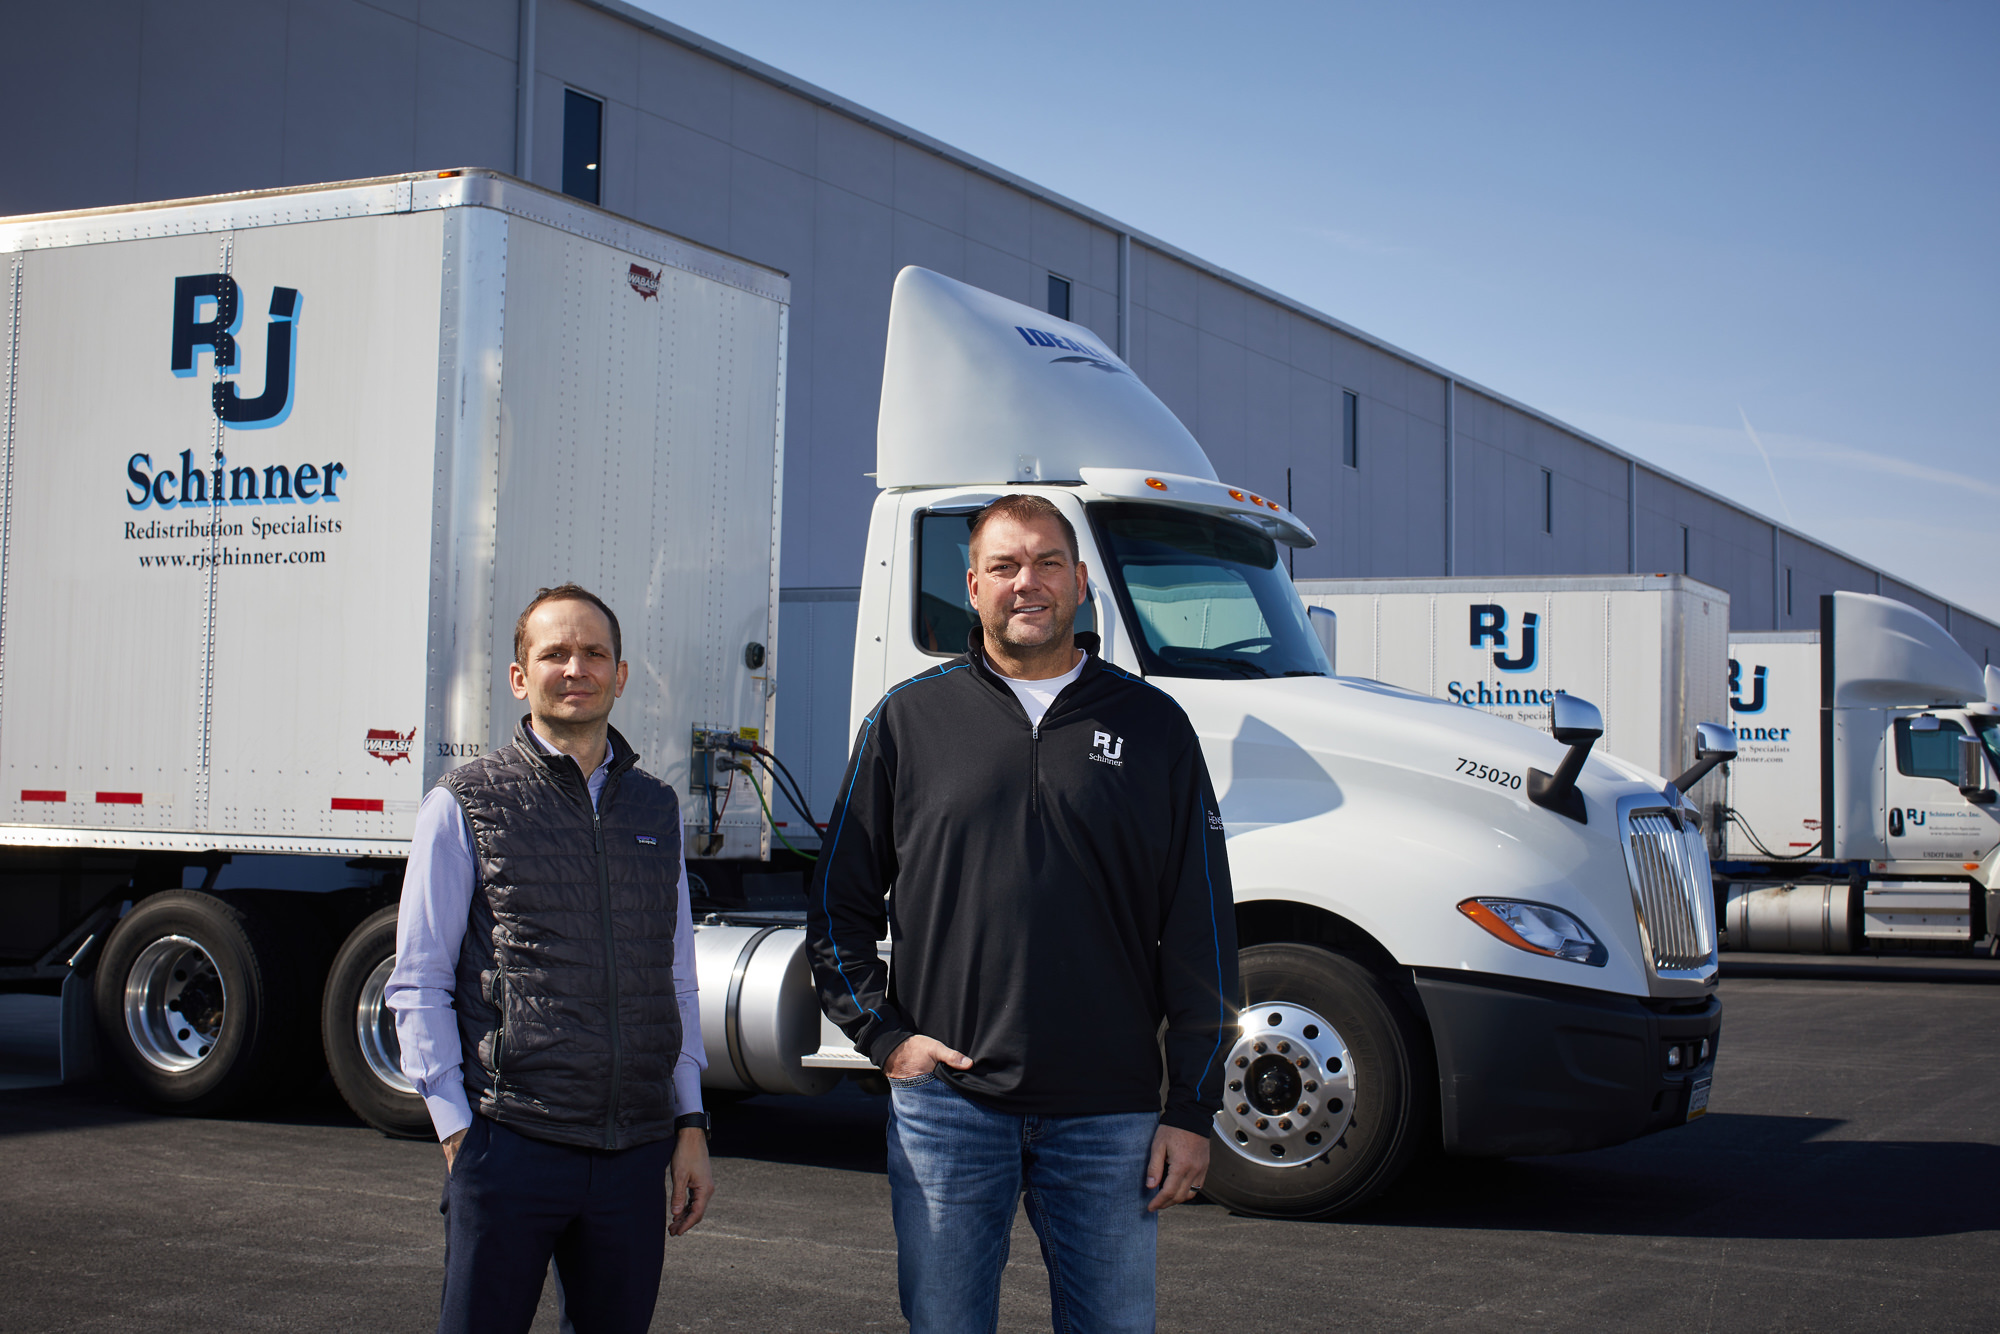 J.G. Petrucci provides creative solution to growing tenants